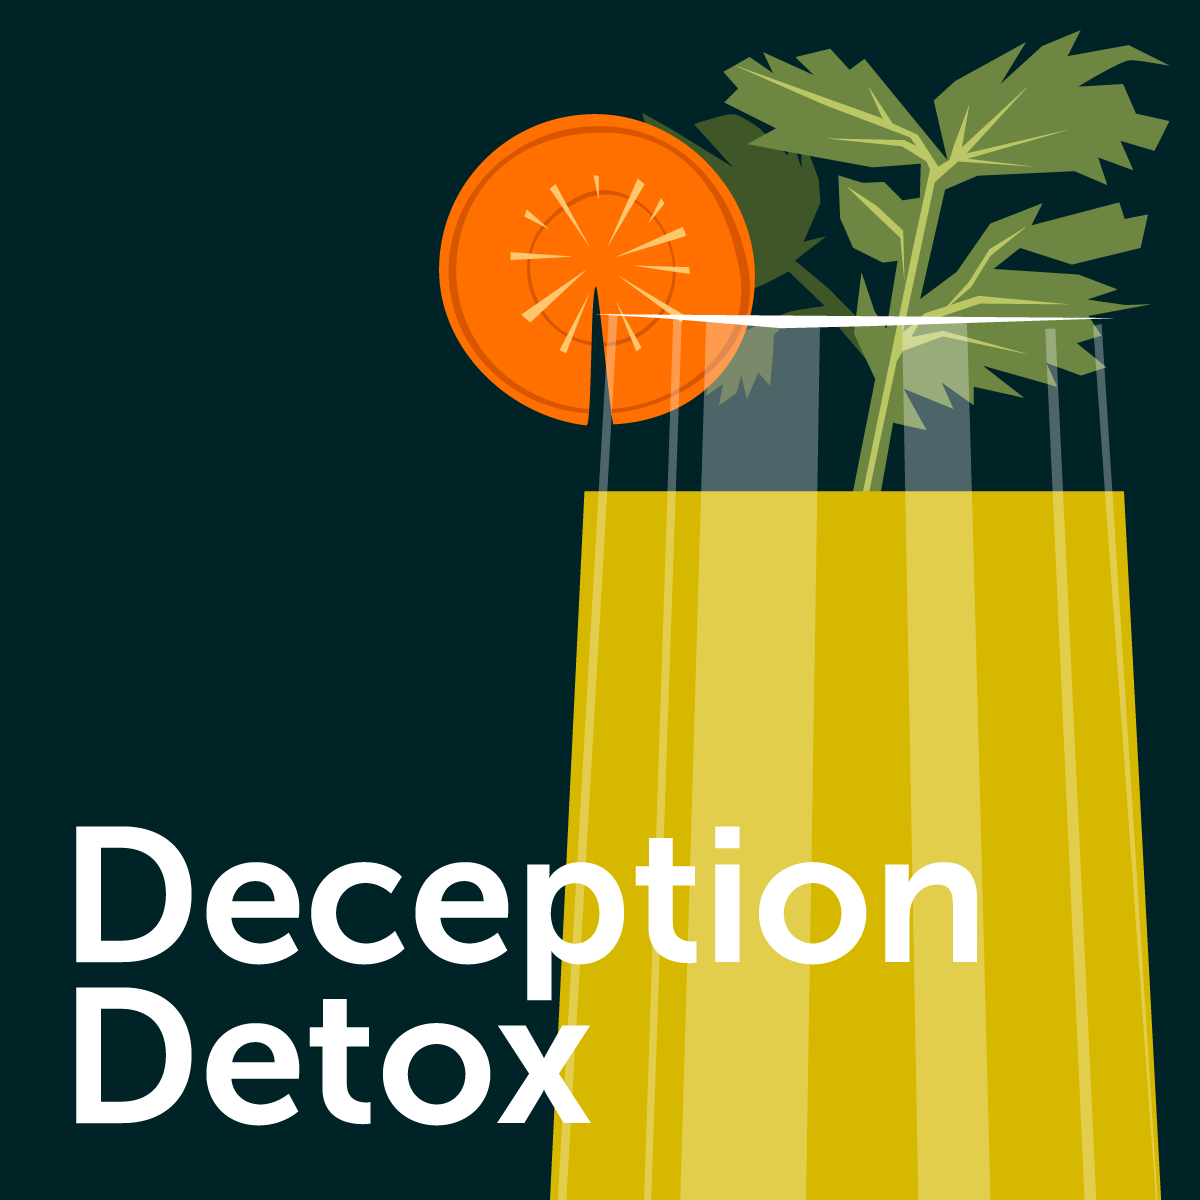 Deception Detox - using research methods and statistics to change the world course image